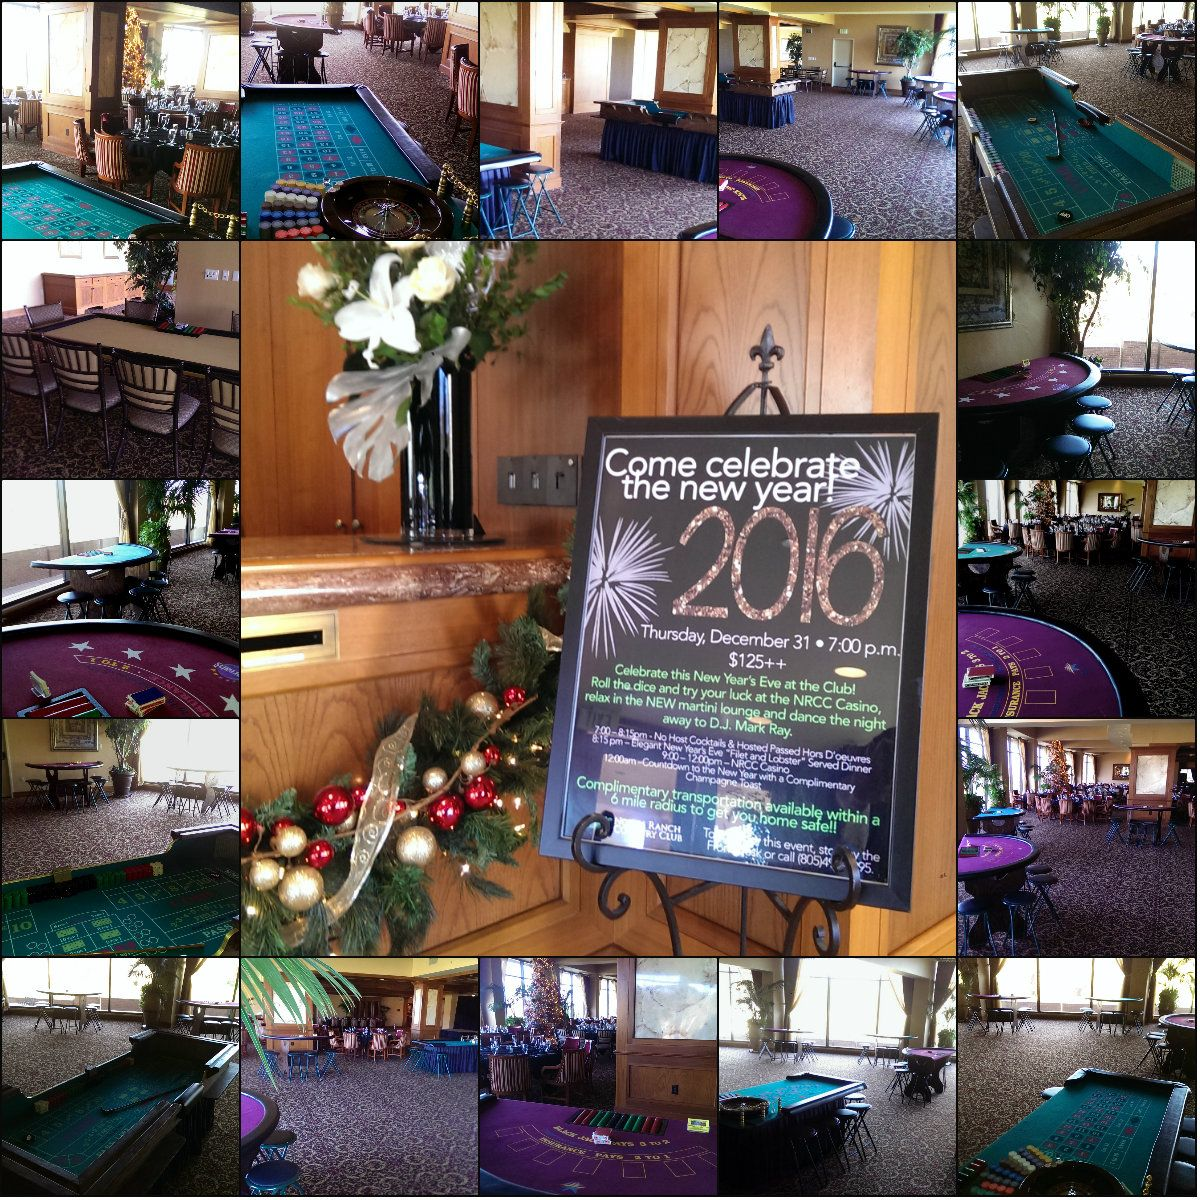 New Year's Eve celebration at North Ranch Country Club